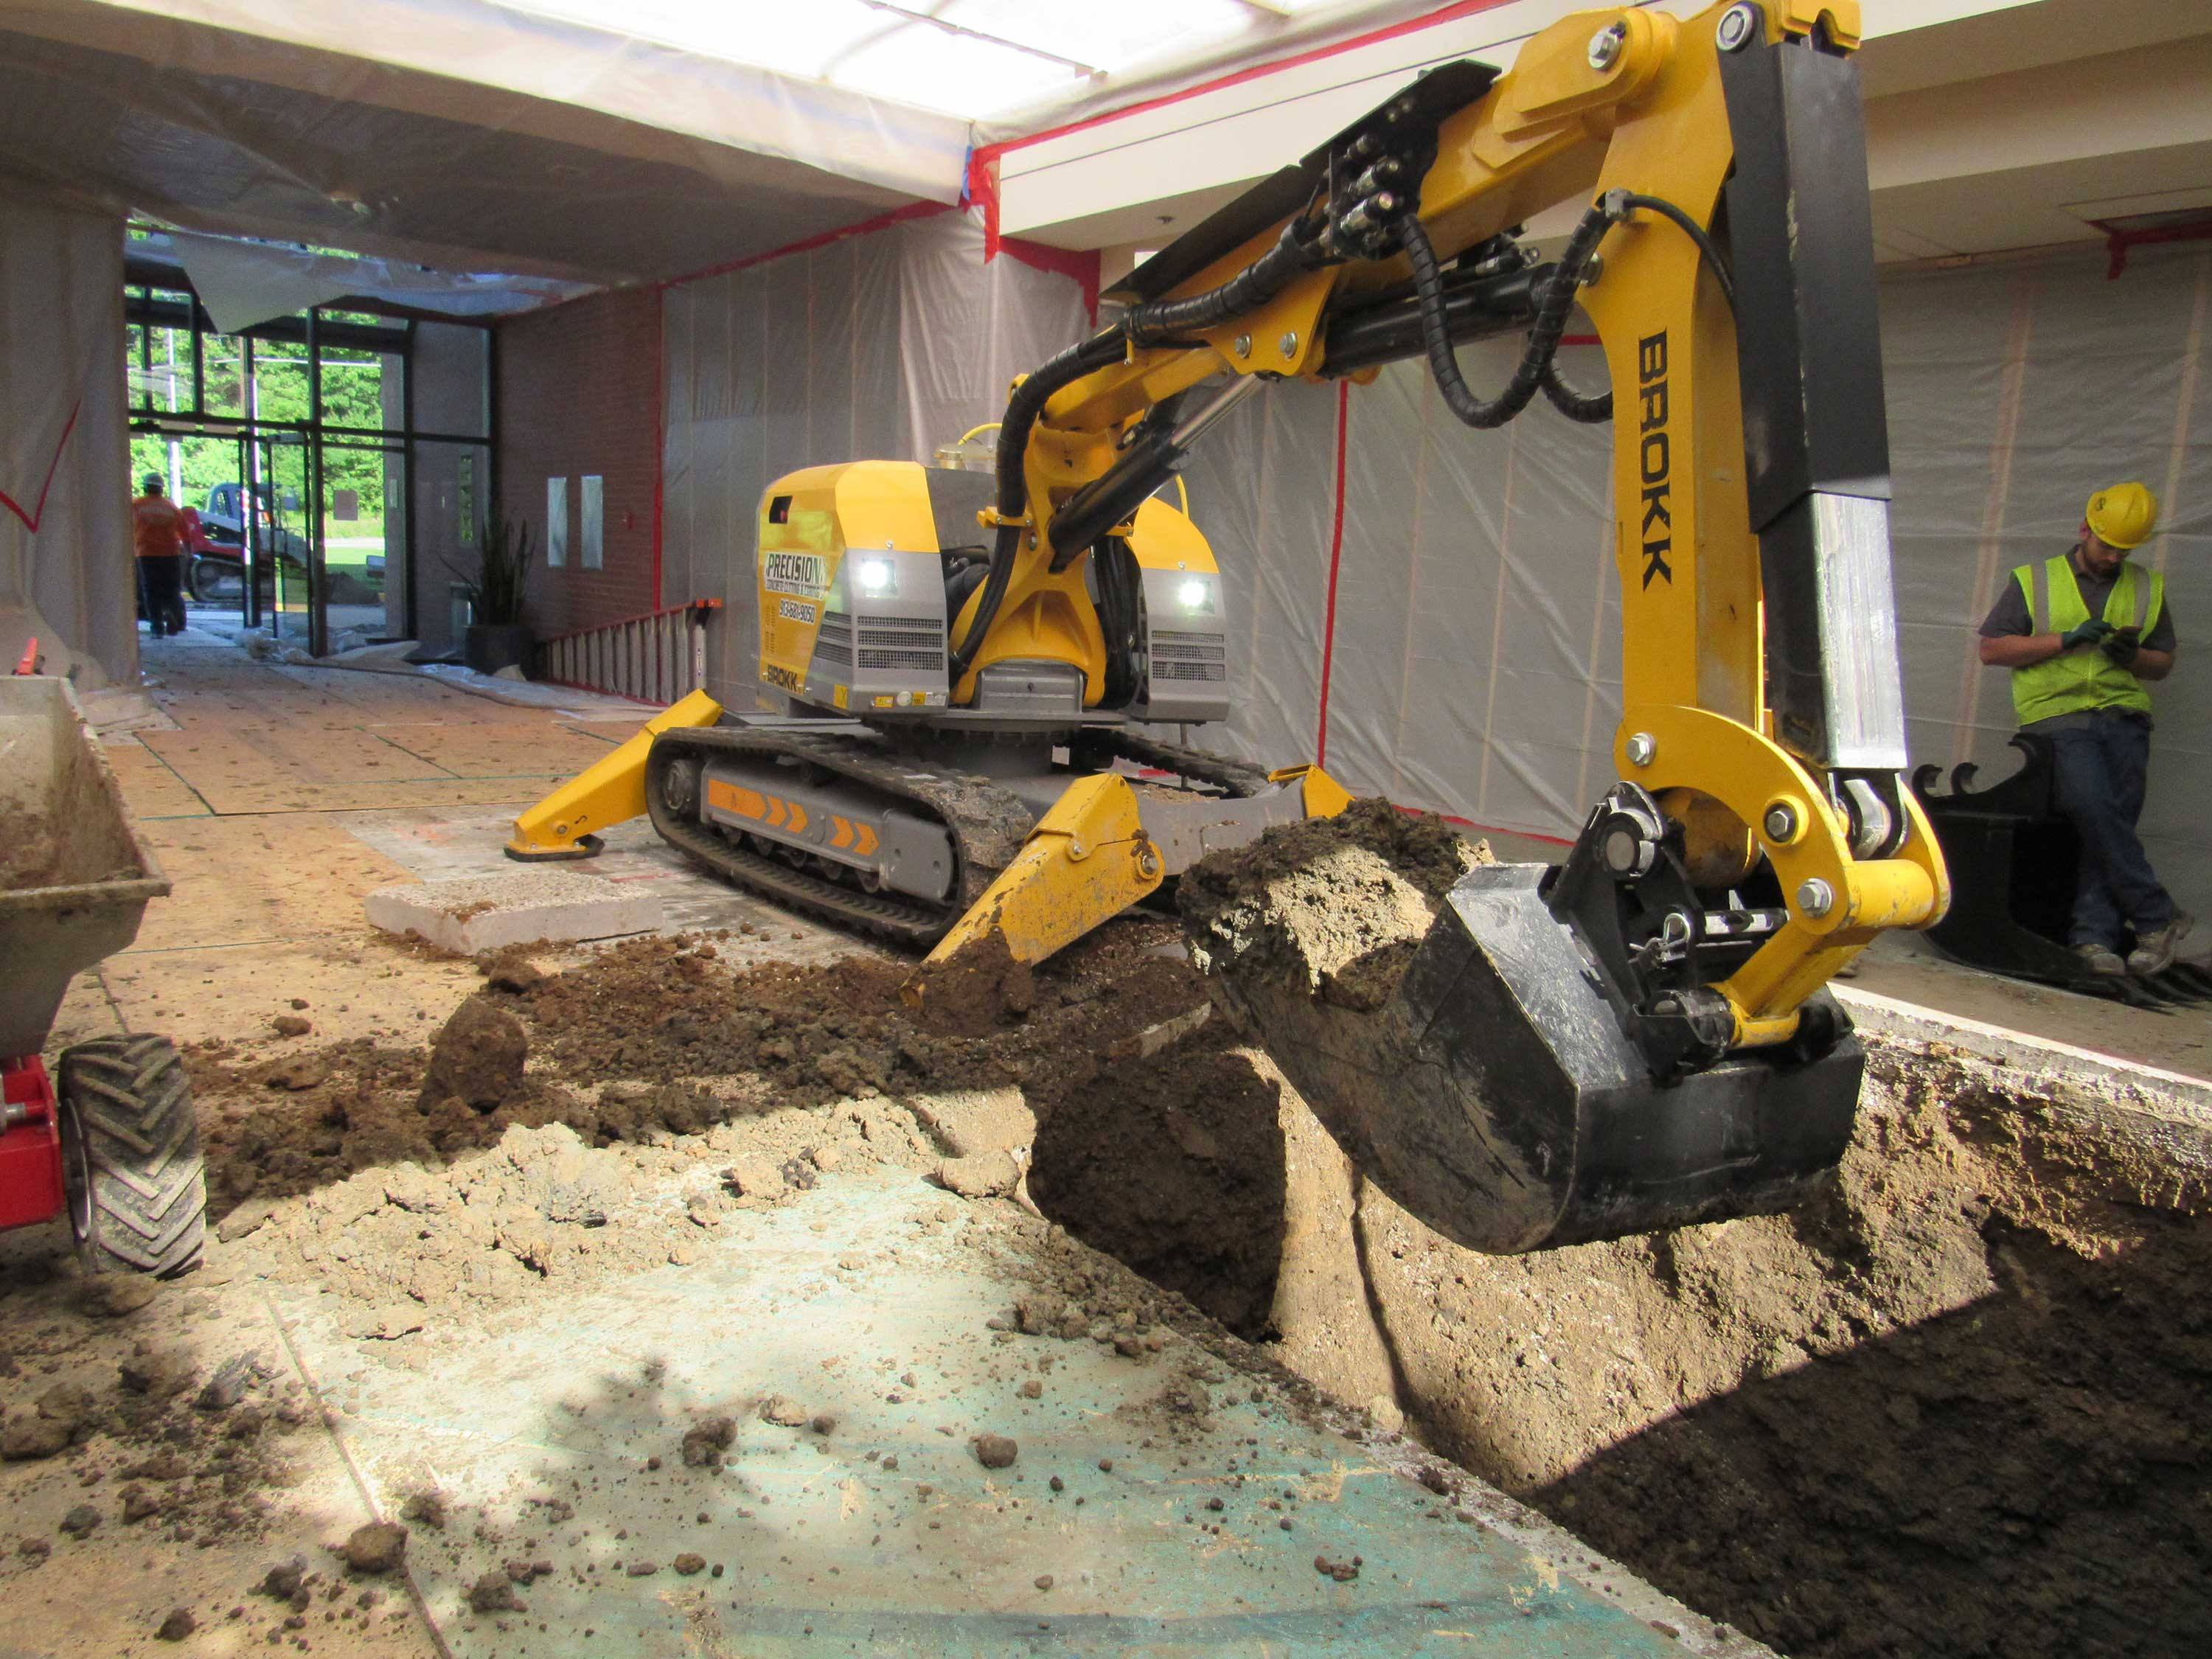 Plumbing excavation precision cutting and coring